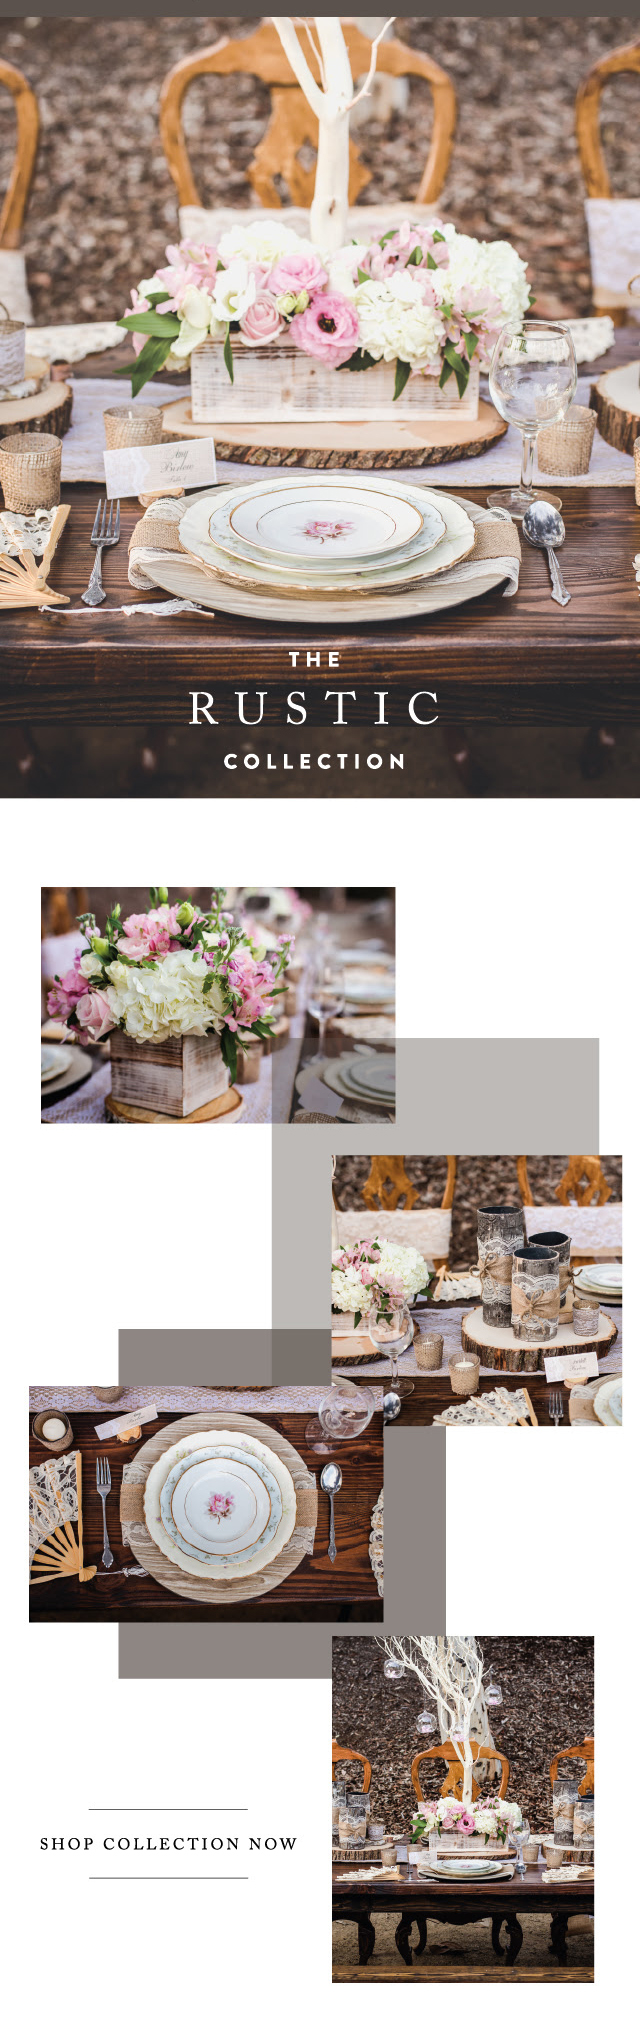 Awesome Website With Discount Wedding Supplies For Rustic Vintage Barn And Woodland Wedding Decorations Everything You See Here On This Diy Wedding Supplies Wedding Supplies Wholesale Diy Wedding Decorations